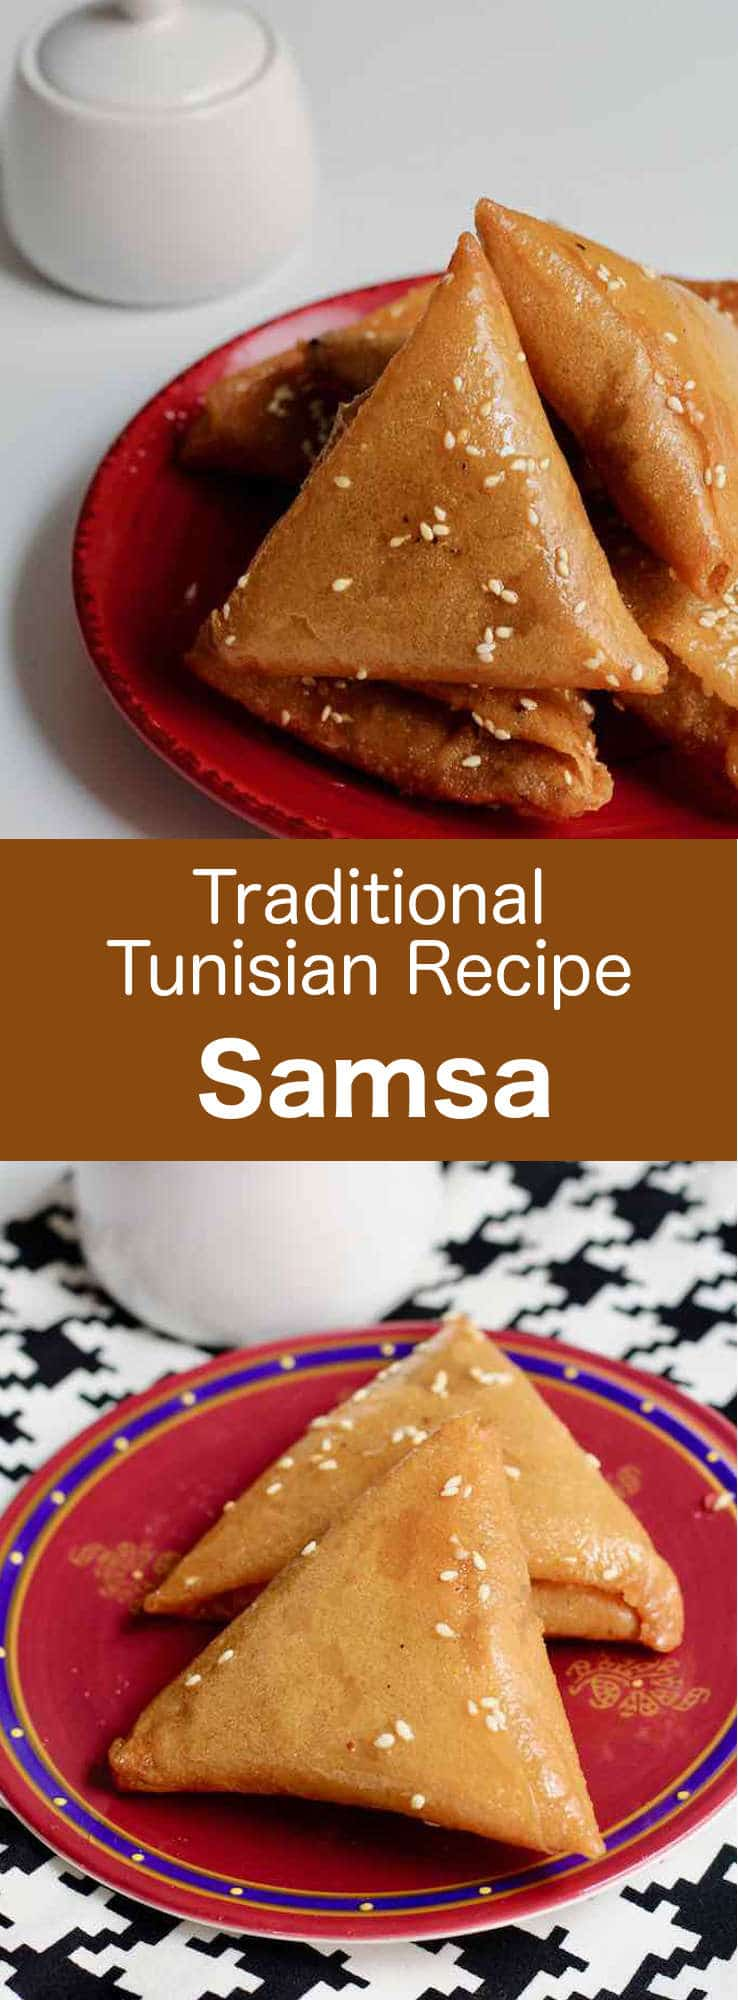 Samsa is a Tunisian triangular-shaped almond-based pastry. After the almonds are toasted and ground, they are mixed with sugar, orange blossom water and cinnamon to make the filling. #Tunisia #Tunisian #TunisianCuisine #TunisianRecipe #NorthAfricanCuisine #NorthAfricanRecipe #NorthAfrica #Maghreb #MaghrebCuisine #Pastry #TunisianPastry #NorthAfricanPastry #WorldCuisine #196flavors